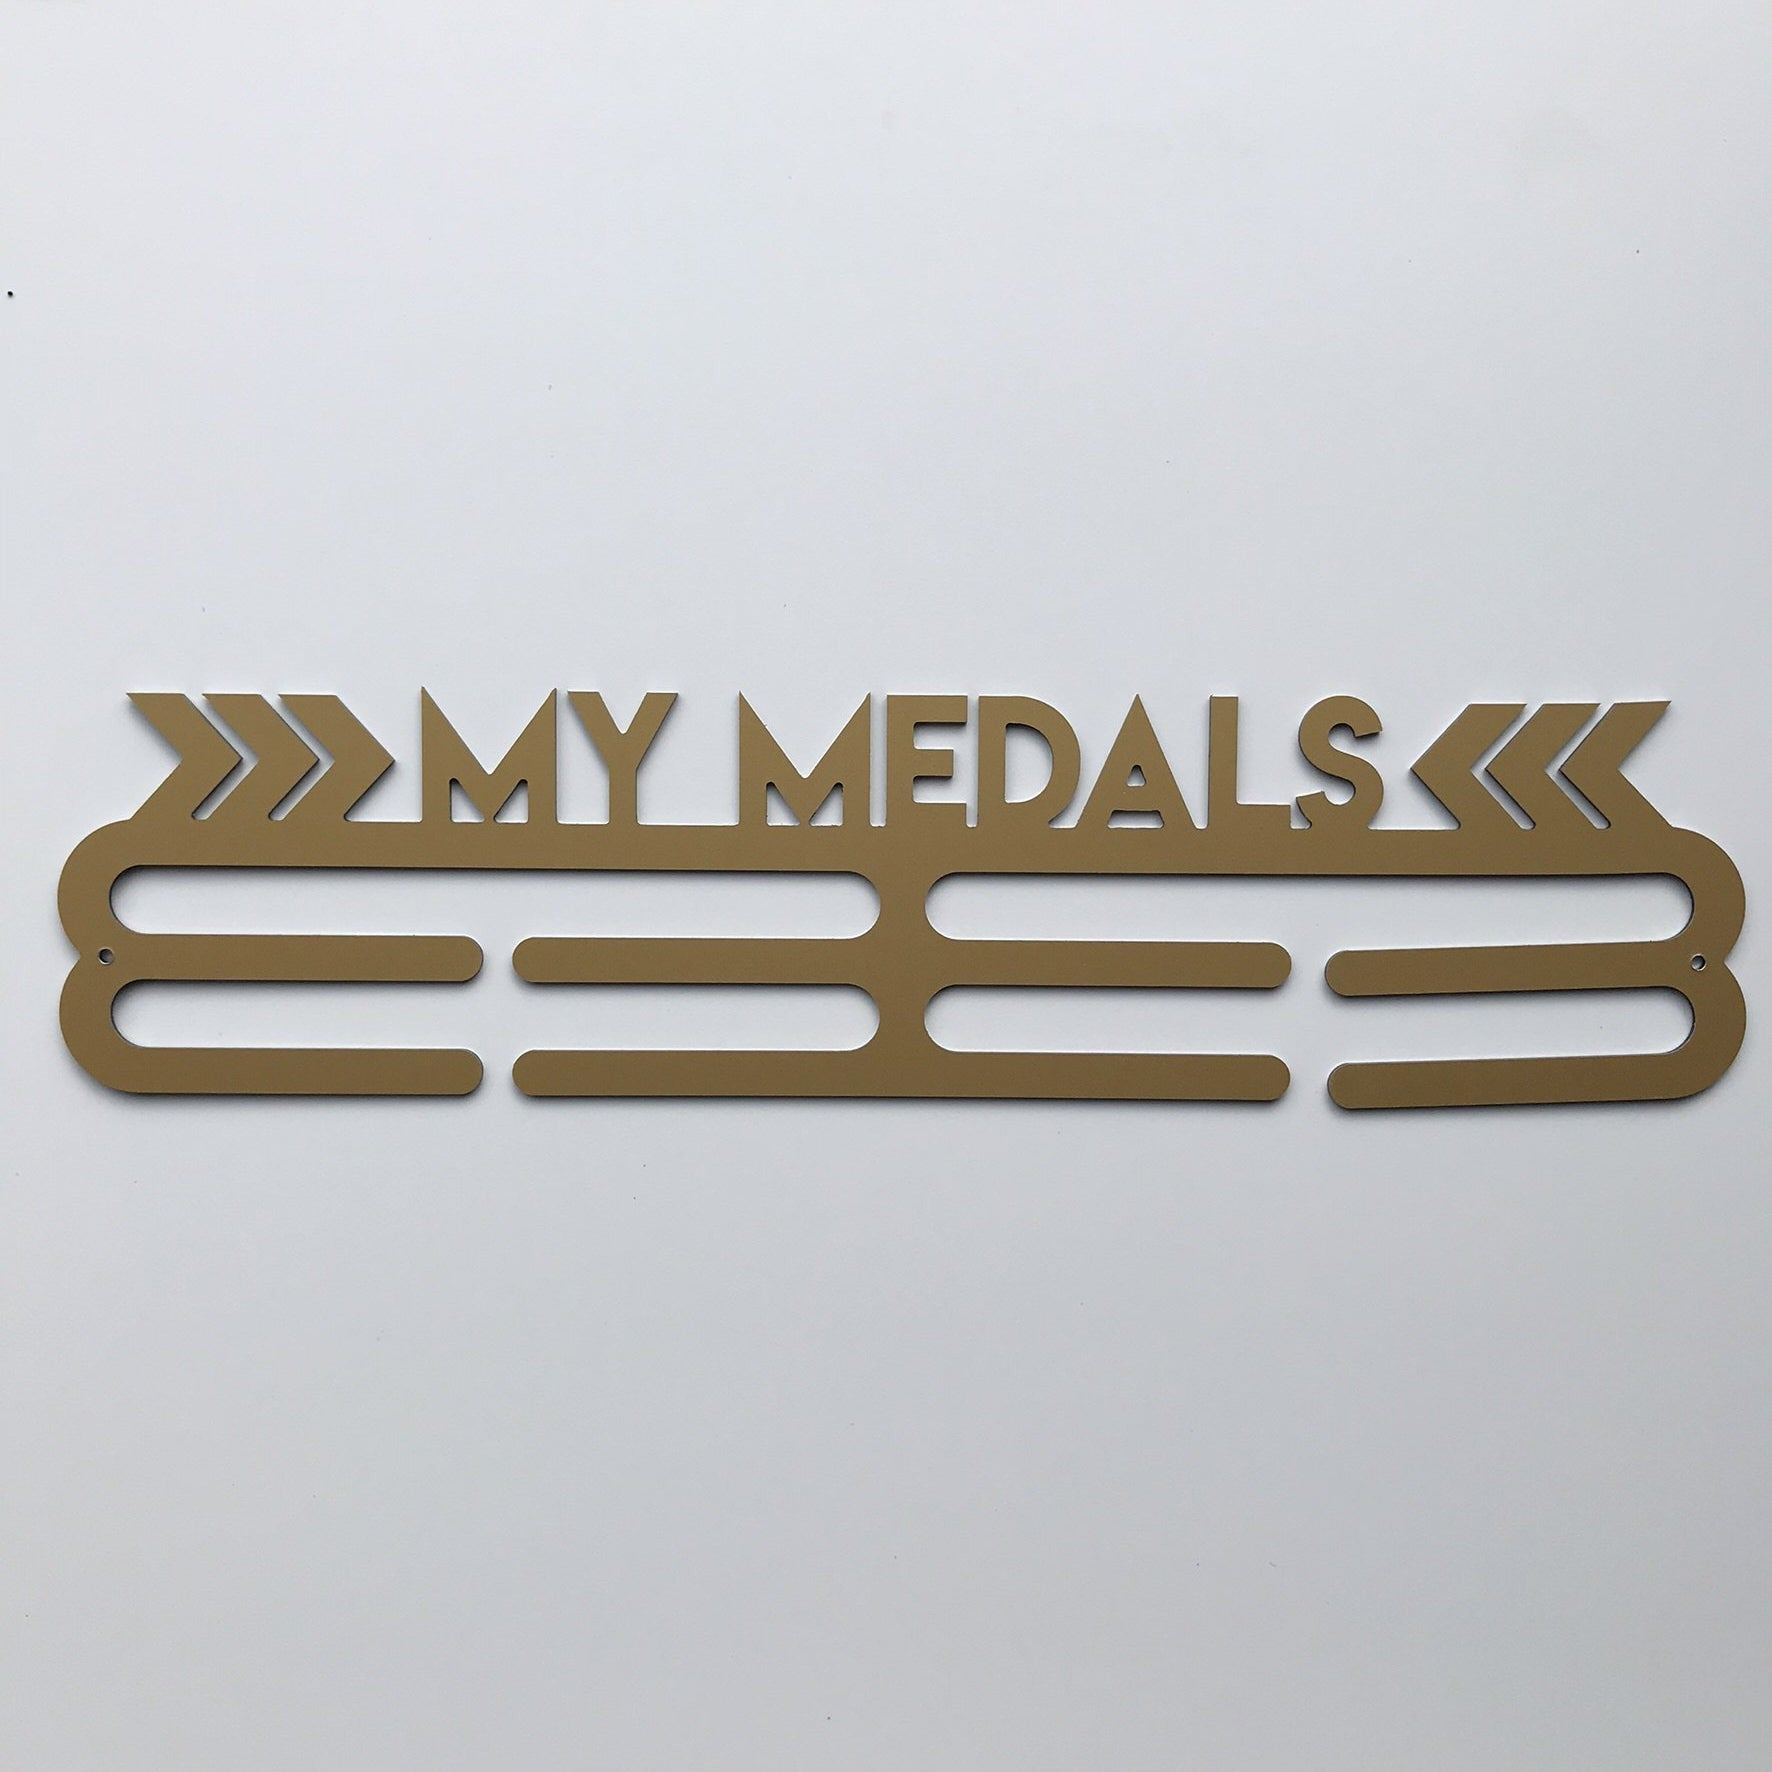 Personalised Medal Hanger - Large 56cm - stamptastic-uk